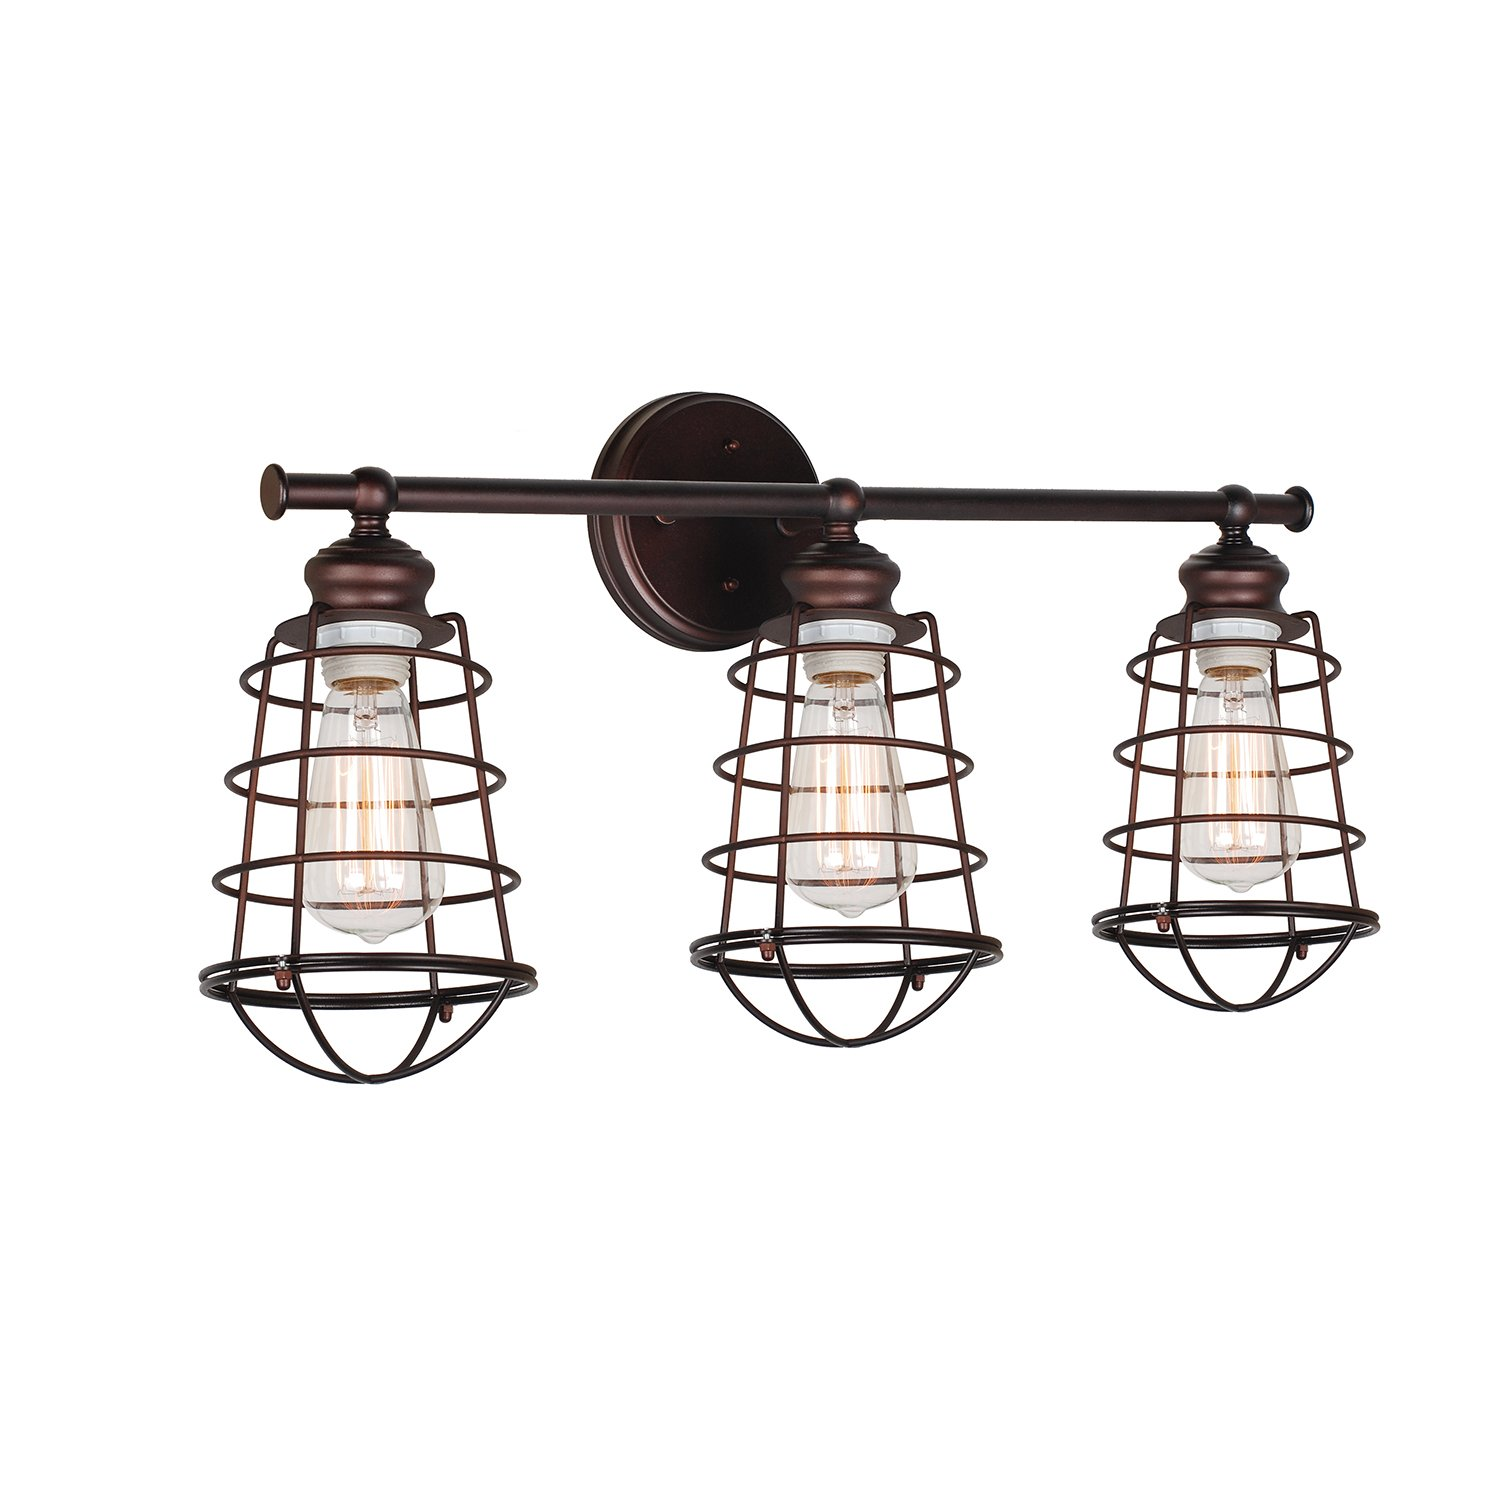 Exceptional Amazon.com: Design House 519736 Ajax 3 Light Vanity Light, Bronze: Home  Improvement